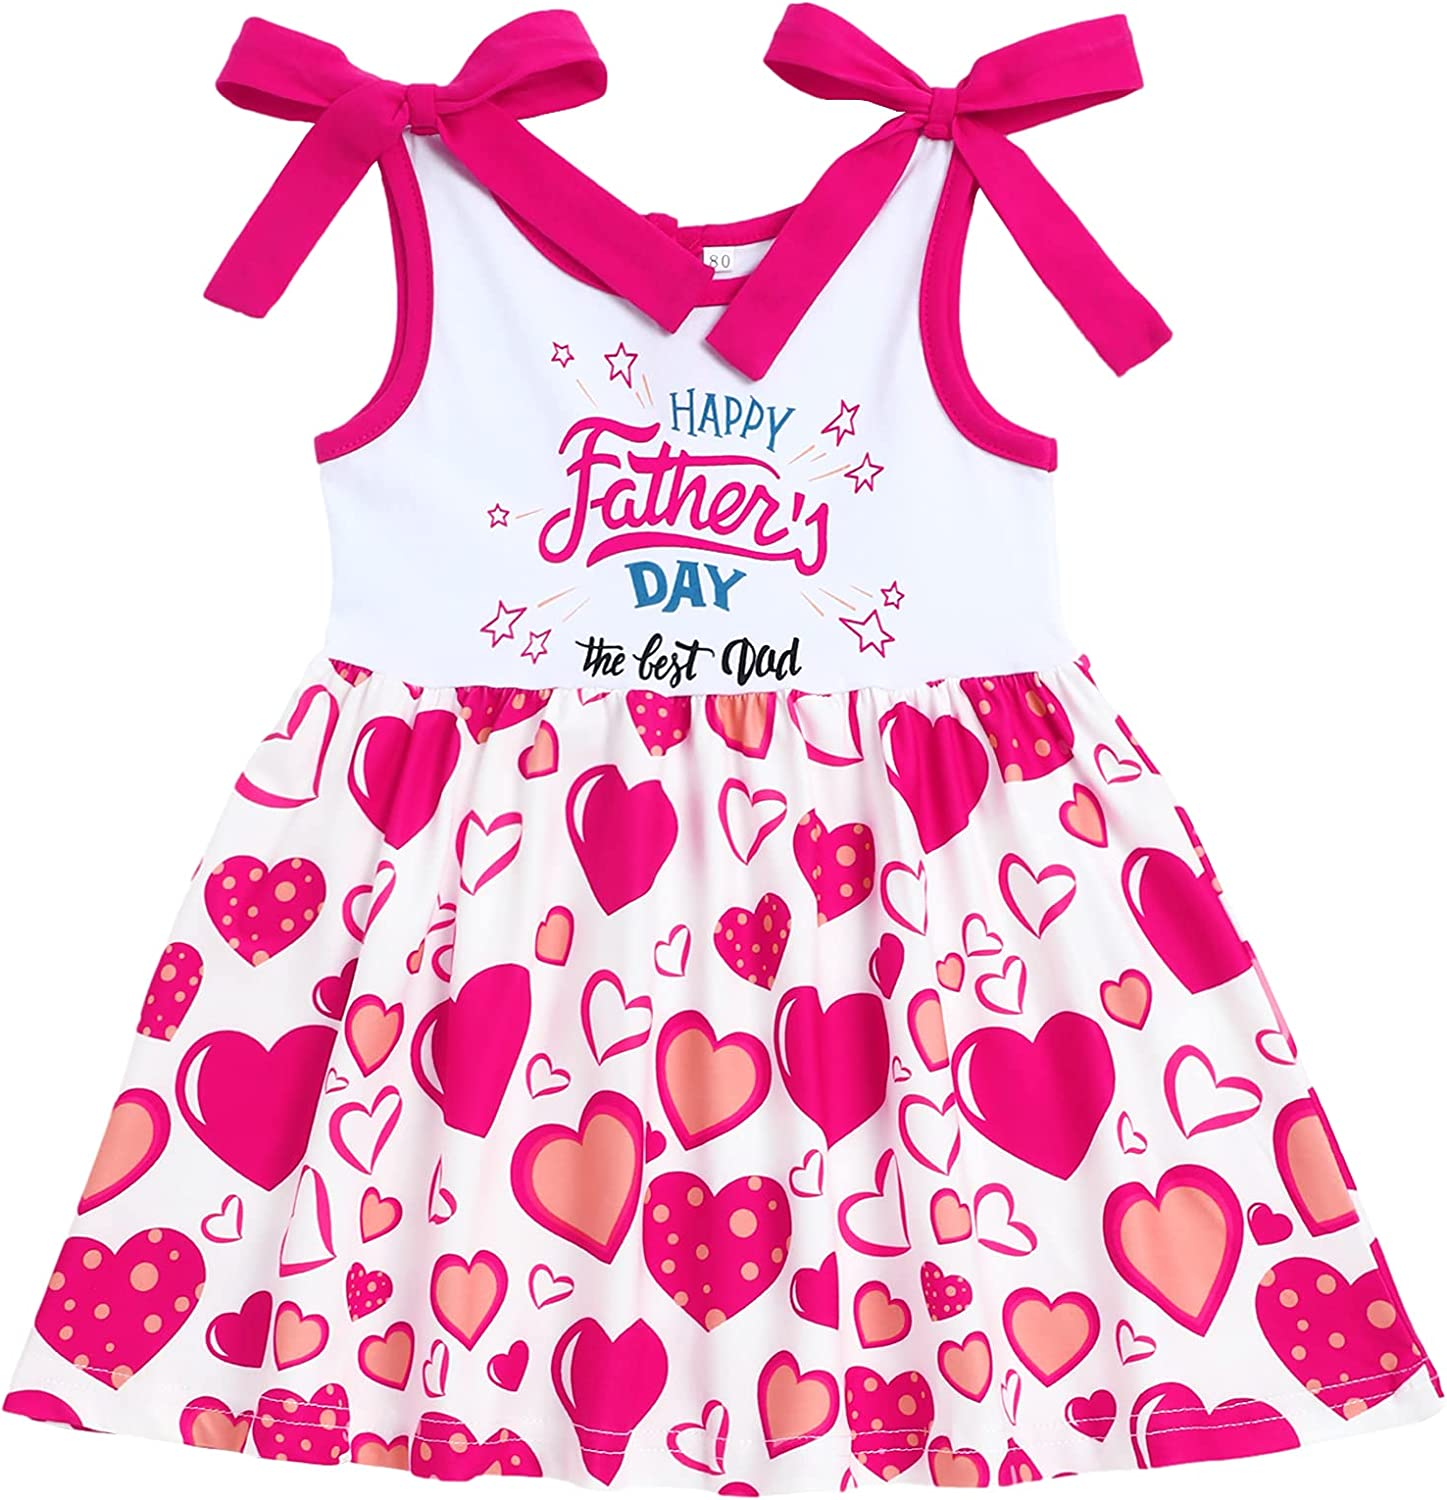 Sinda Happy Father's Day Outfit Clothes Toddler Baby Girls Happy First Fathers Day Outfits Dress